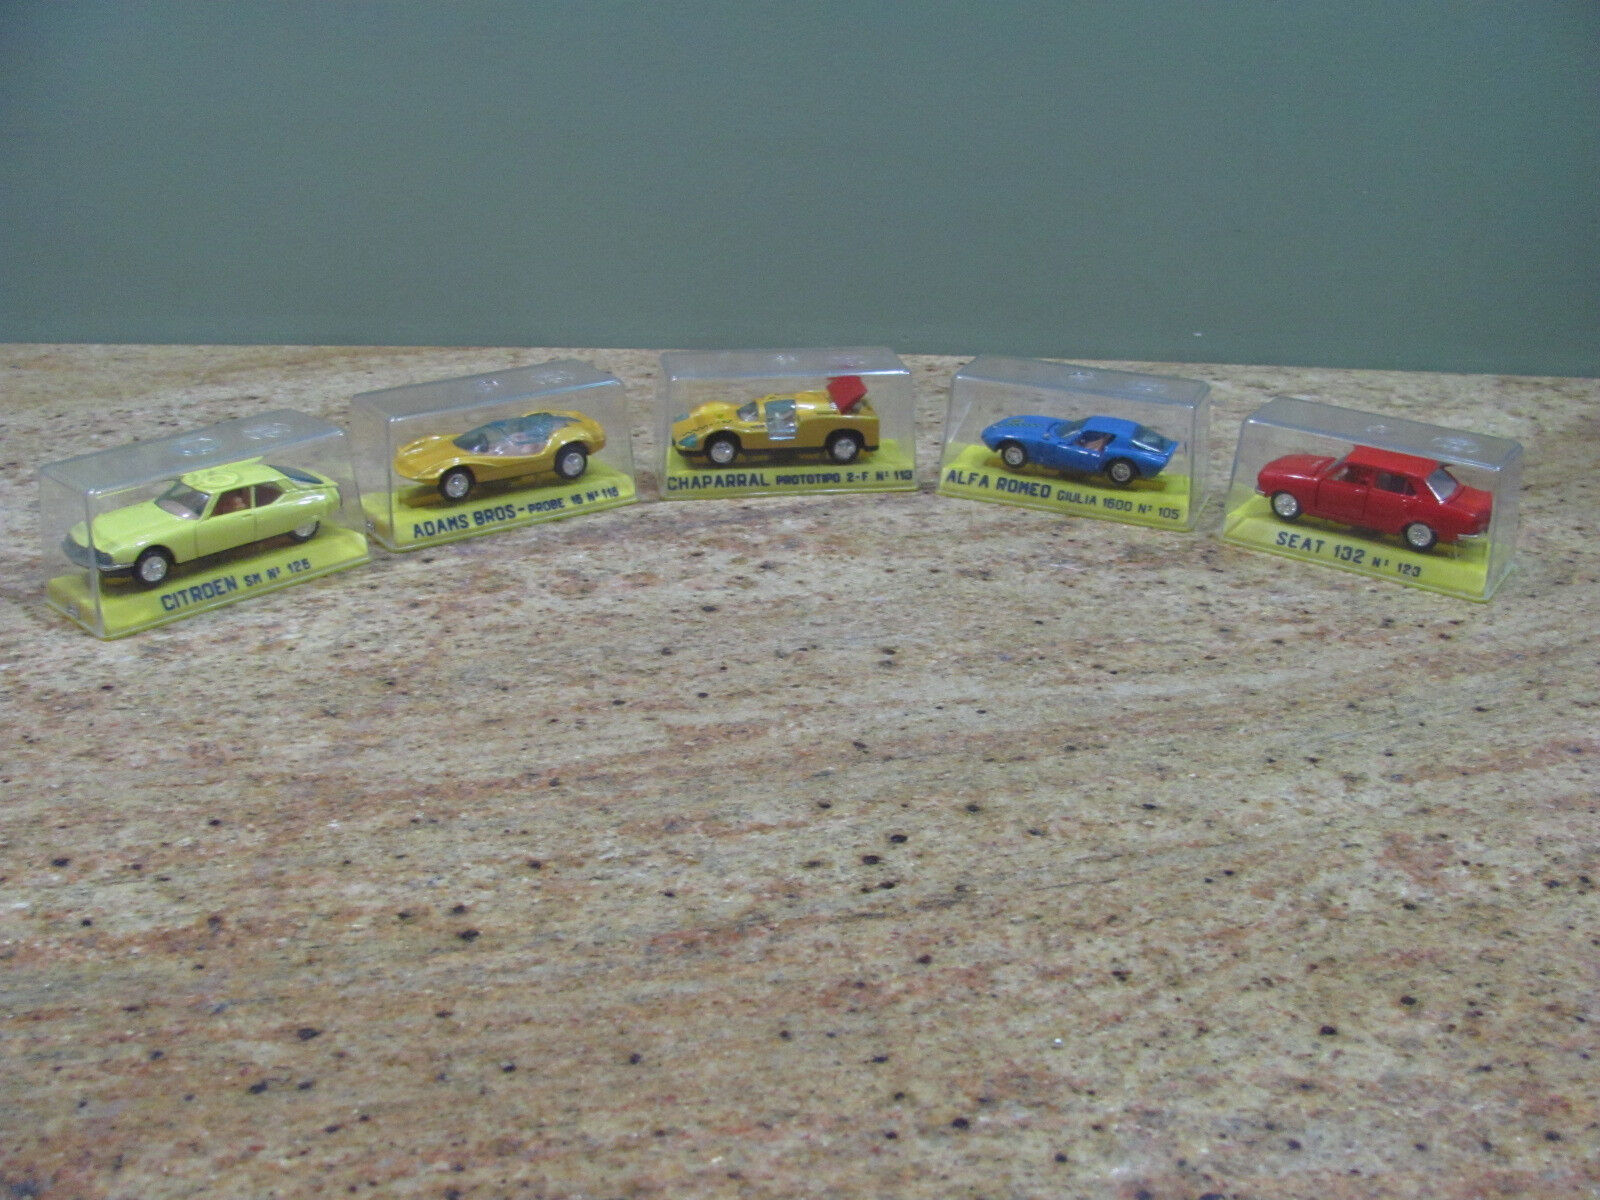 5 Vintage Joal miniature voitures made in Spain échelle 1 43 INCL. ALFA ROMEO, USC 231